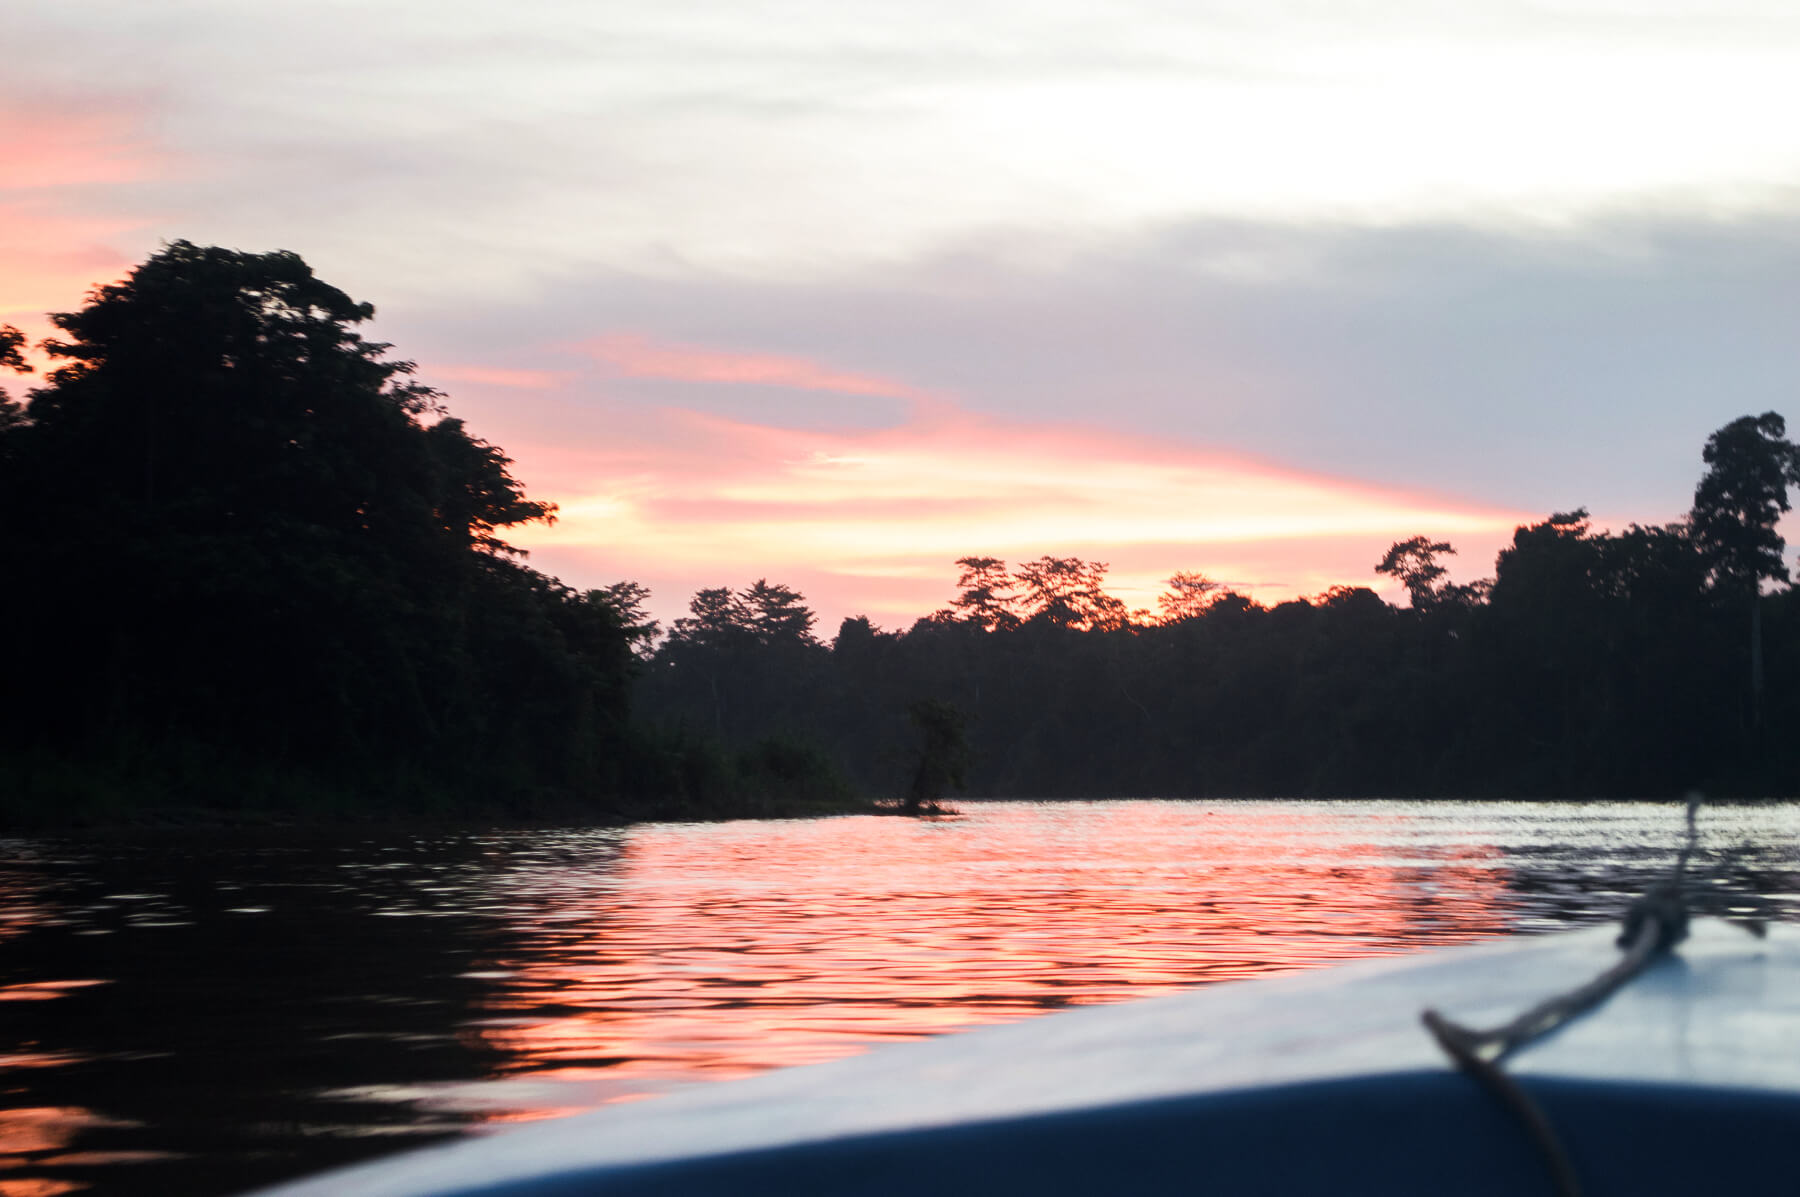 View of sunset from boat on Kinabatangan River